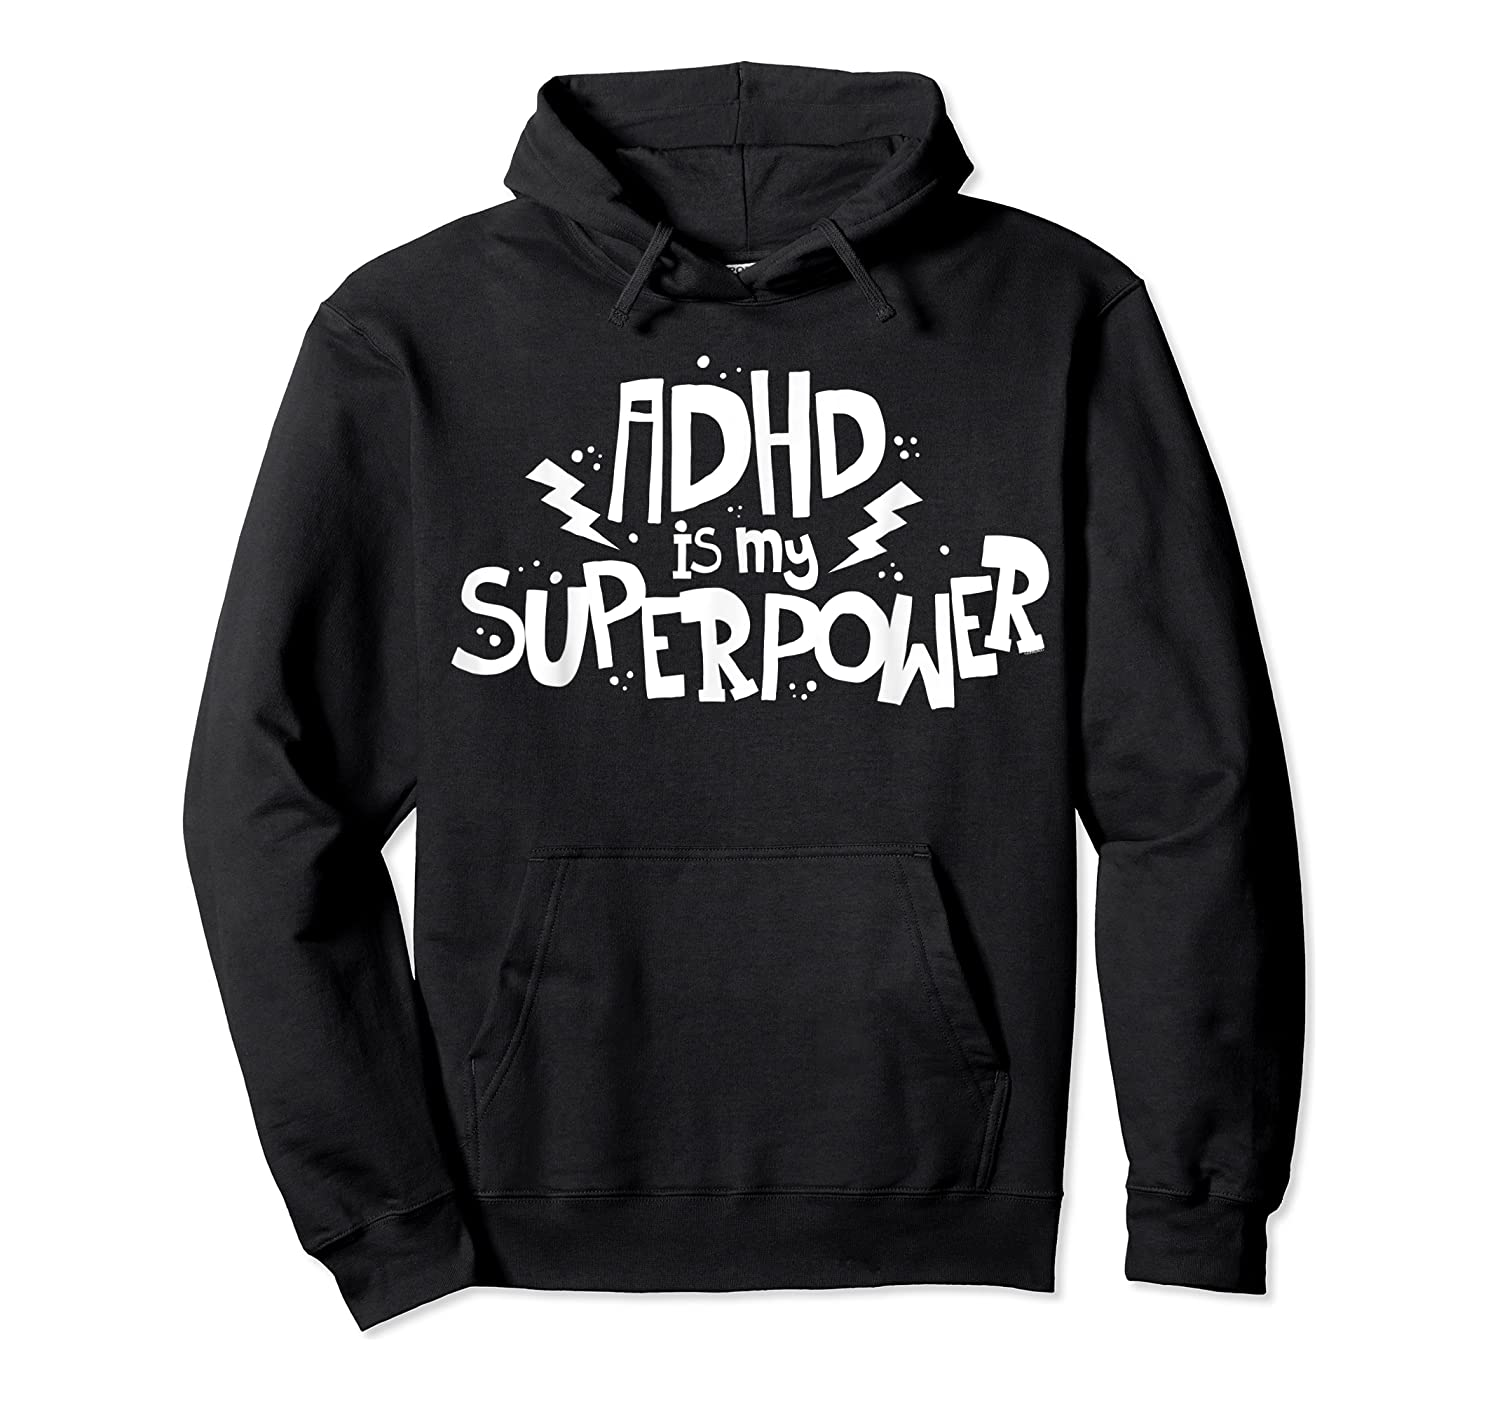 Adhd Is My Superpower Shirt Attention Deficit Disorder Quote Unisex Pullover Hoodie